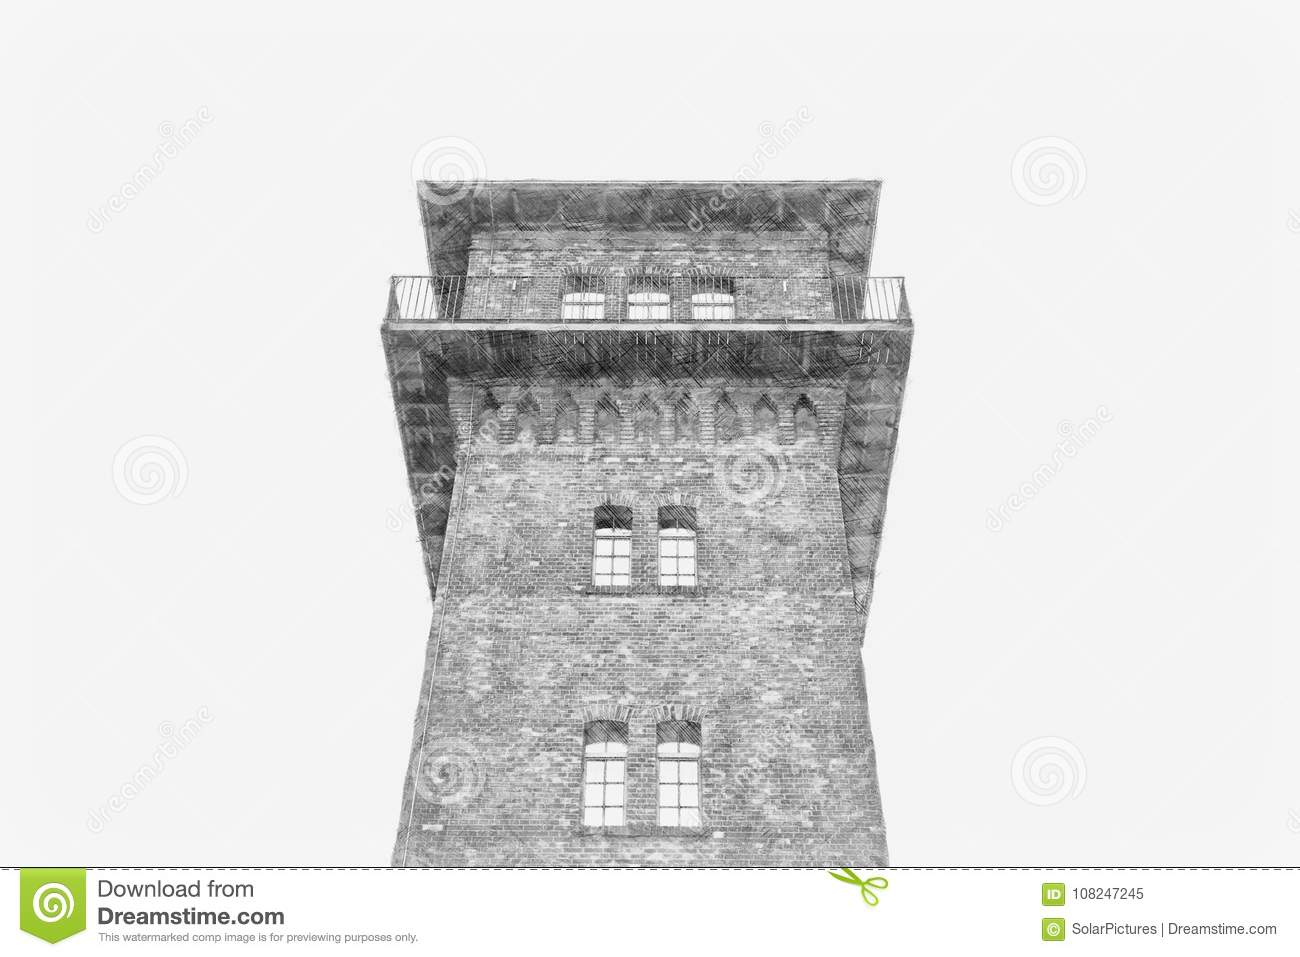 A pencil sketch of an old brick watch tower